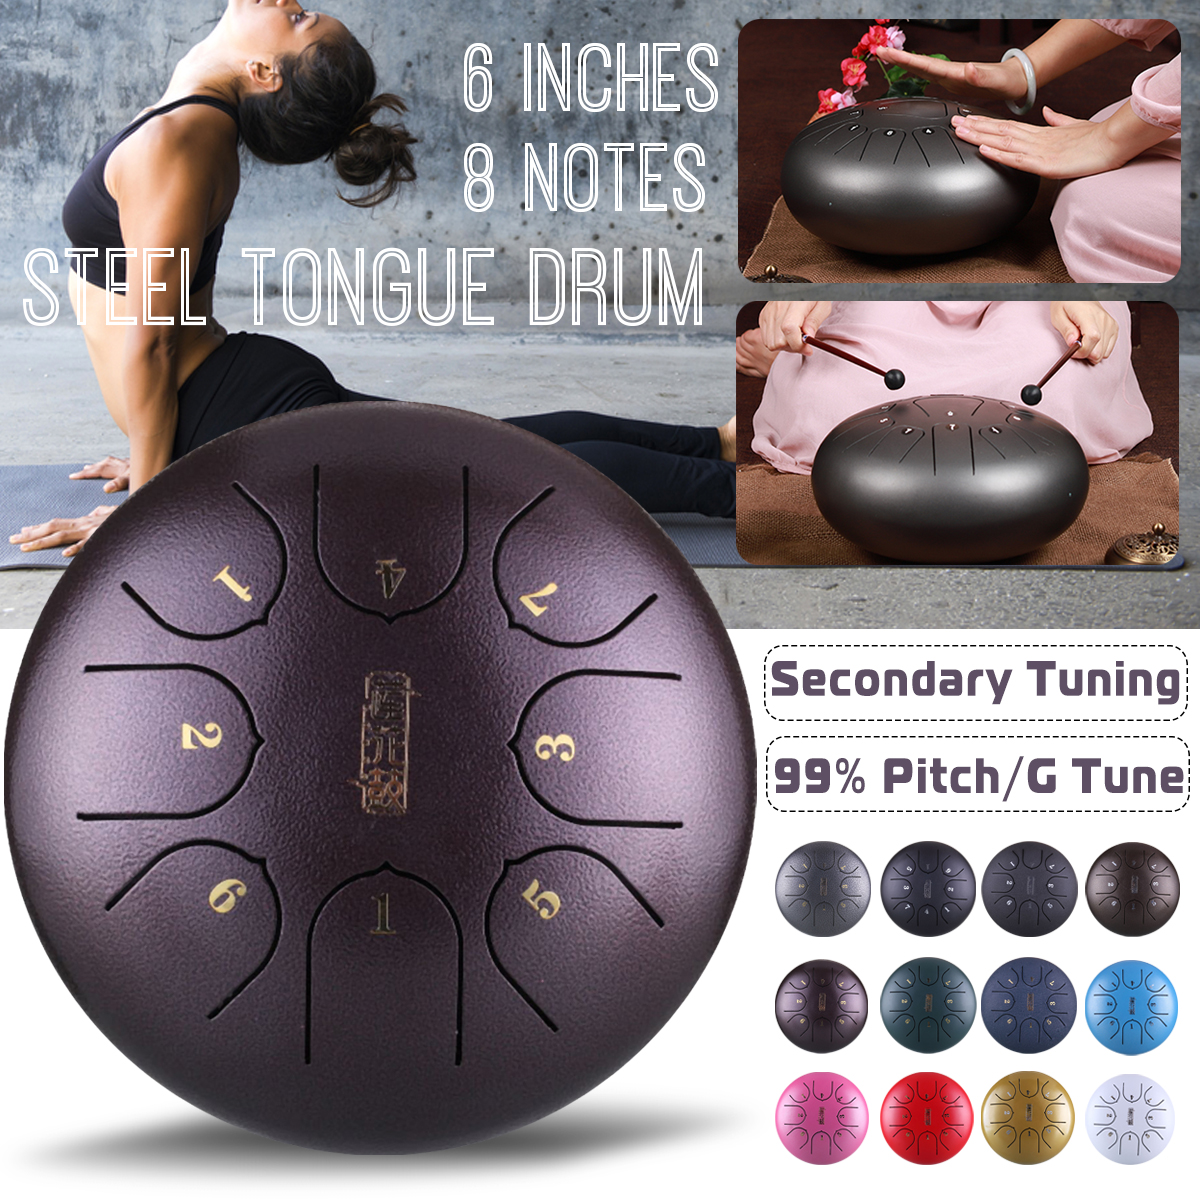 G Tune 8 Notes Hand Pan Handpan Tongue Tank Drum 6 Inch Percussion, Tongue Drum, Handpan Drum with Mallets & Bag